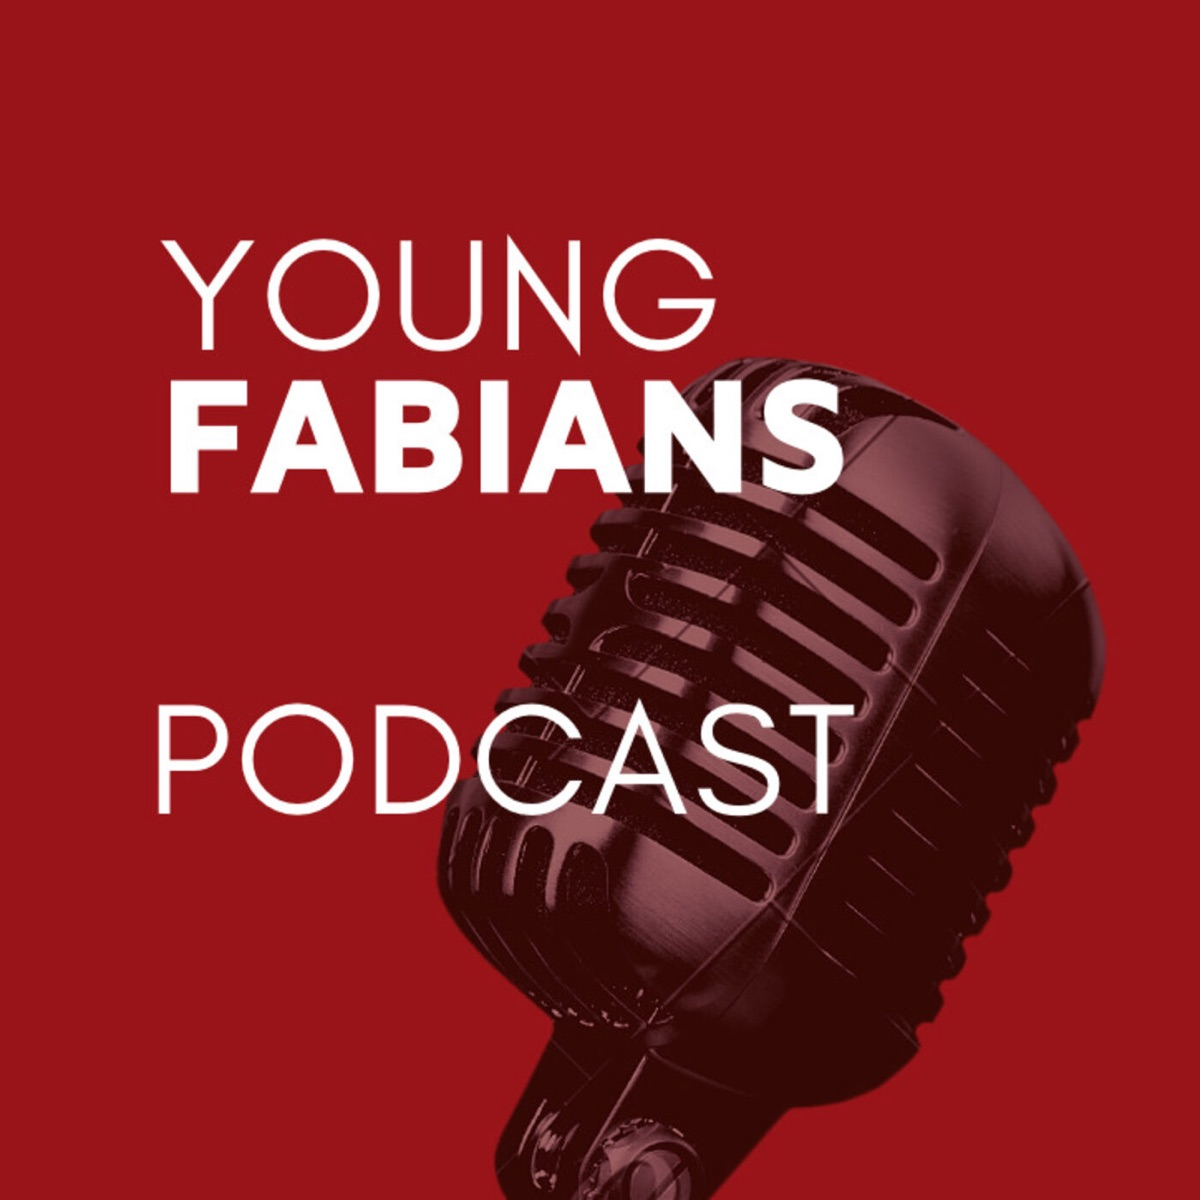 The Young Fabians Podcast